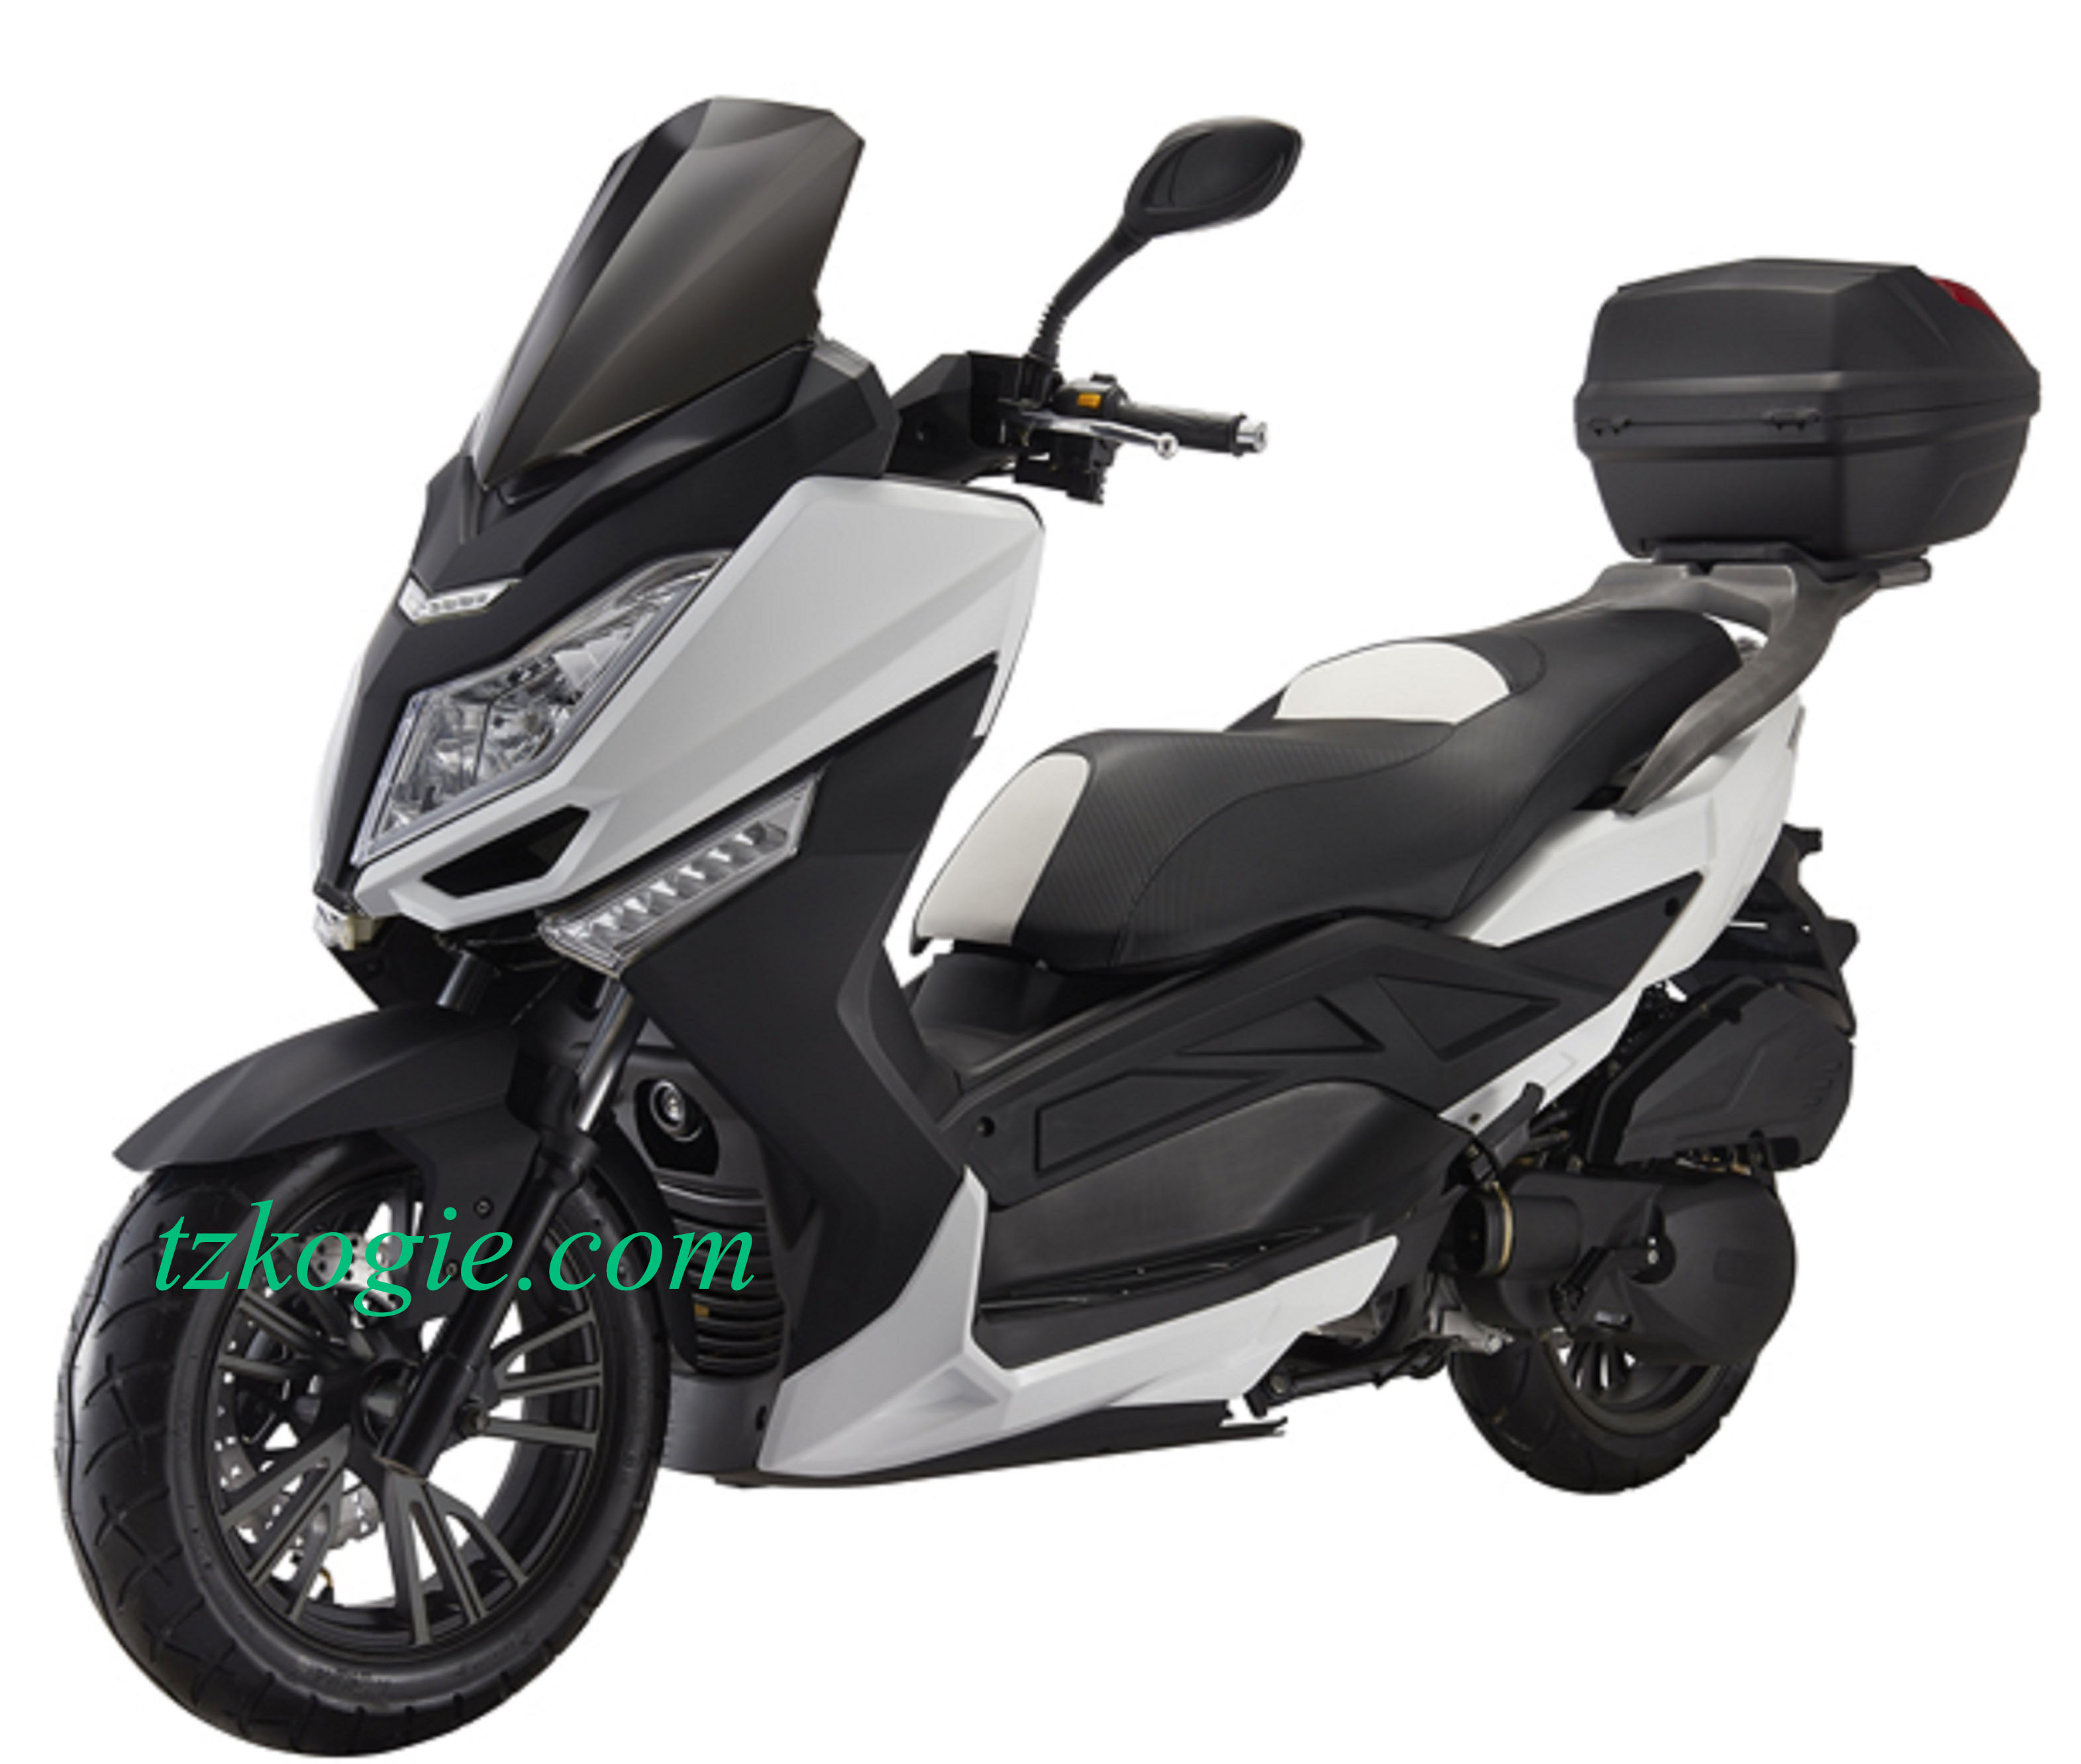 Gasoline scooter motorcycle bigger size moped scooters euro 4 E4 EFI Delphi Digital meter